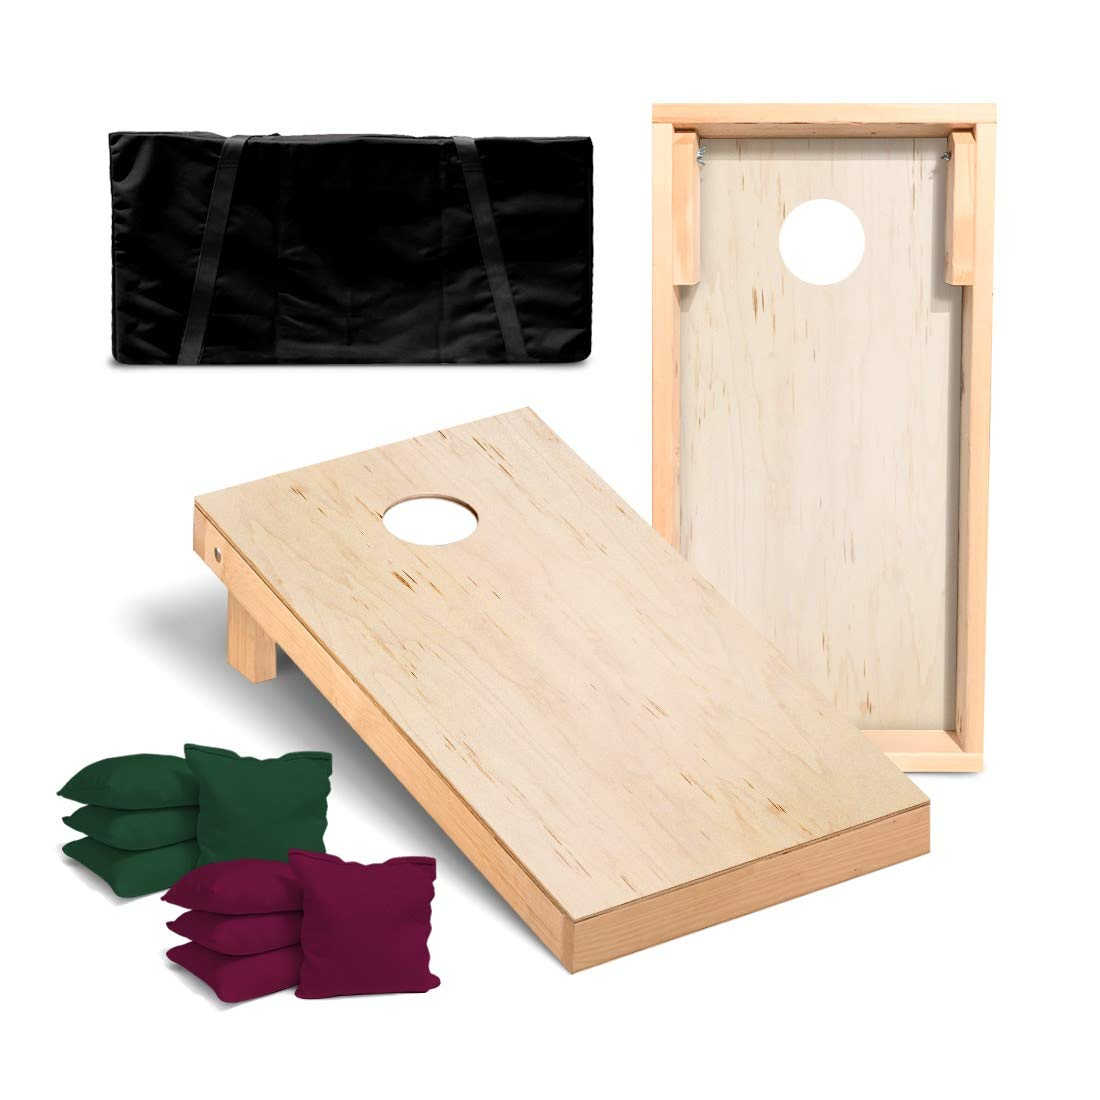 Victory Tailgate Unfinished Regulation Cornhole Bean Bag Toss Game Set with 4 Burgundy and 4 Hunter Green Corn Filled Bags